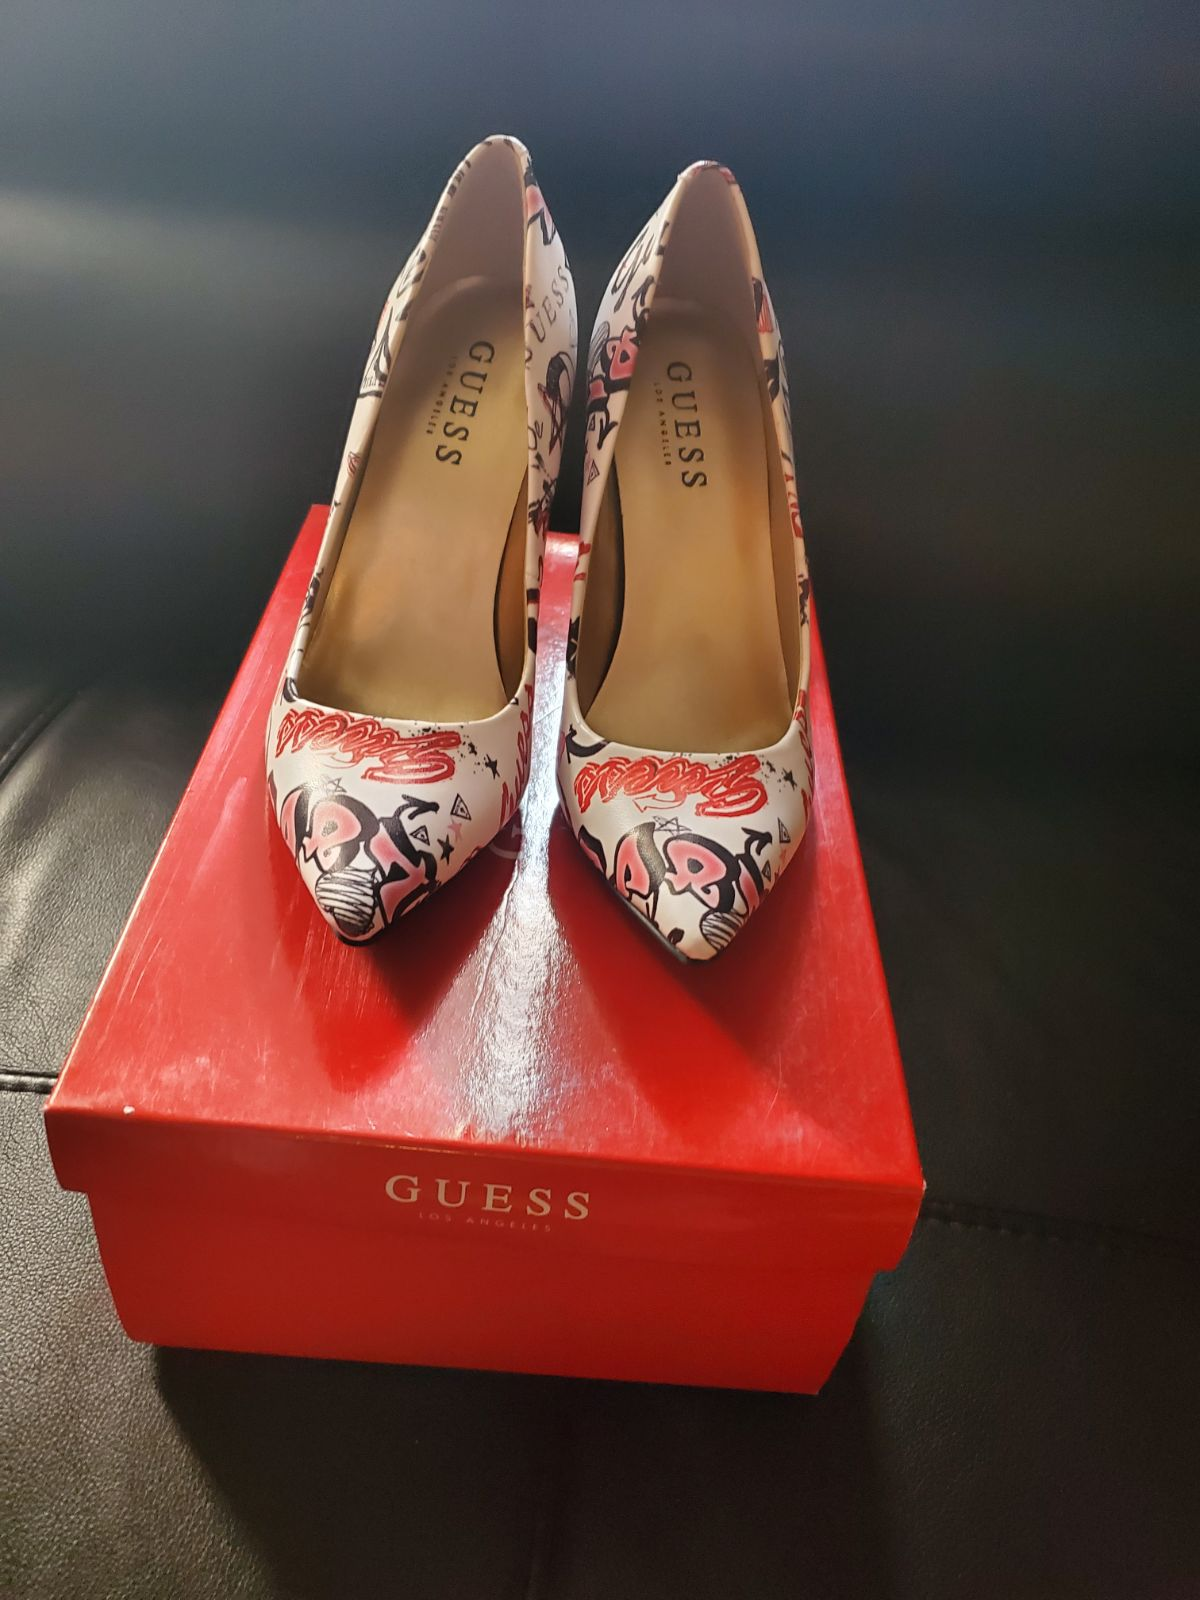 Guess heels new in box never worn